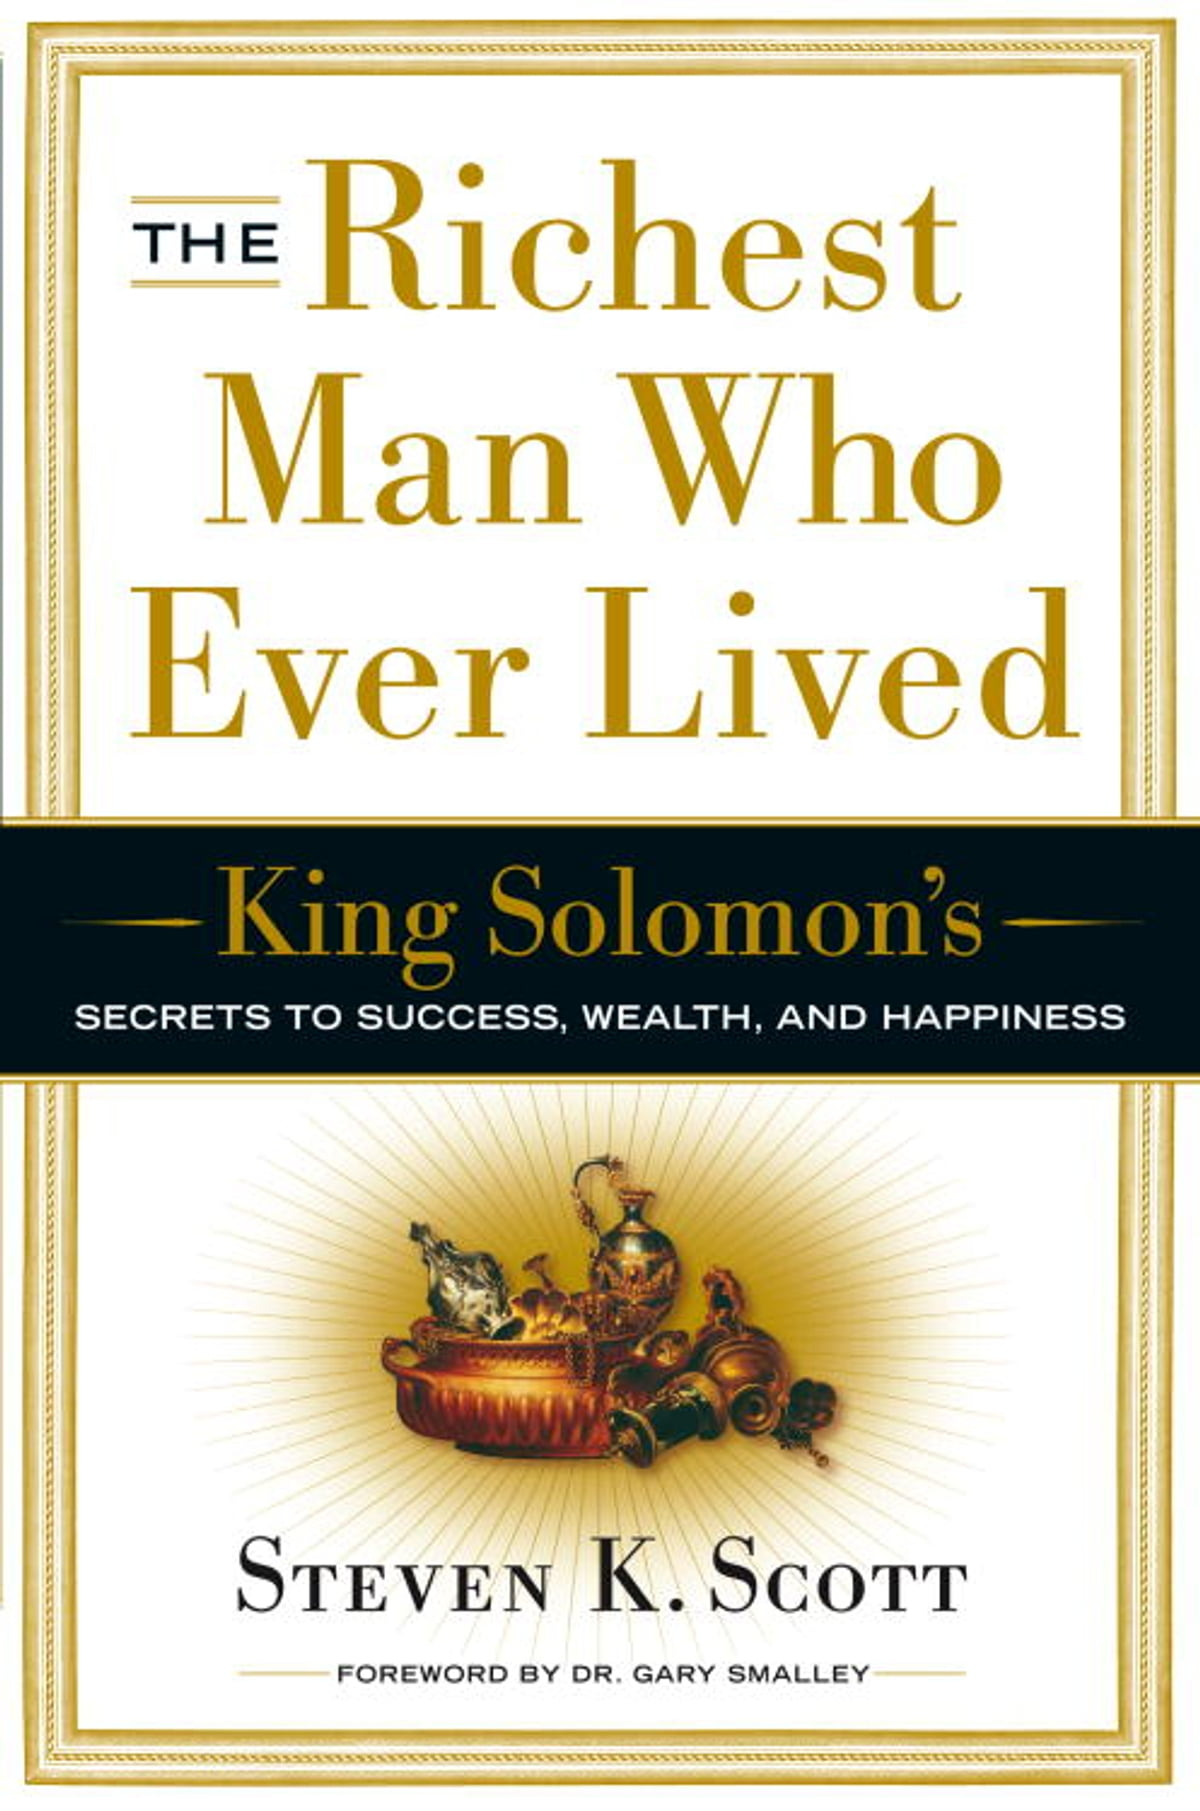 The Richest Man Who Ever Lived  King Solomon's Secrets To Success, Wealth,  And